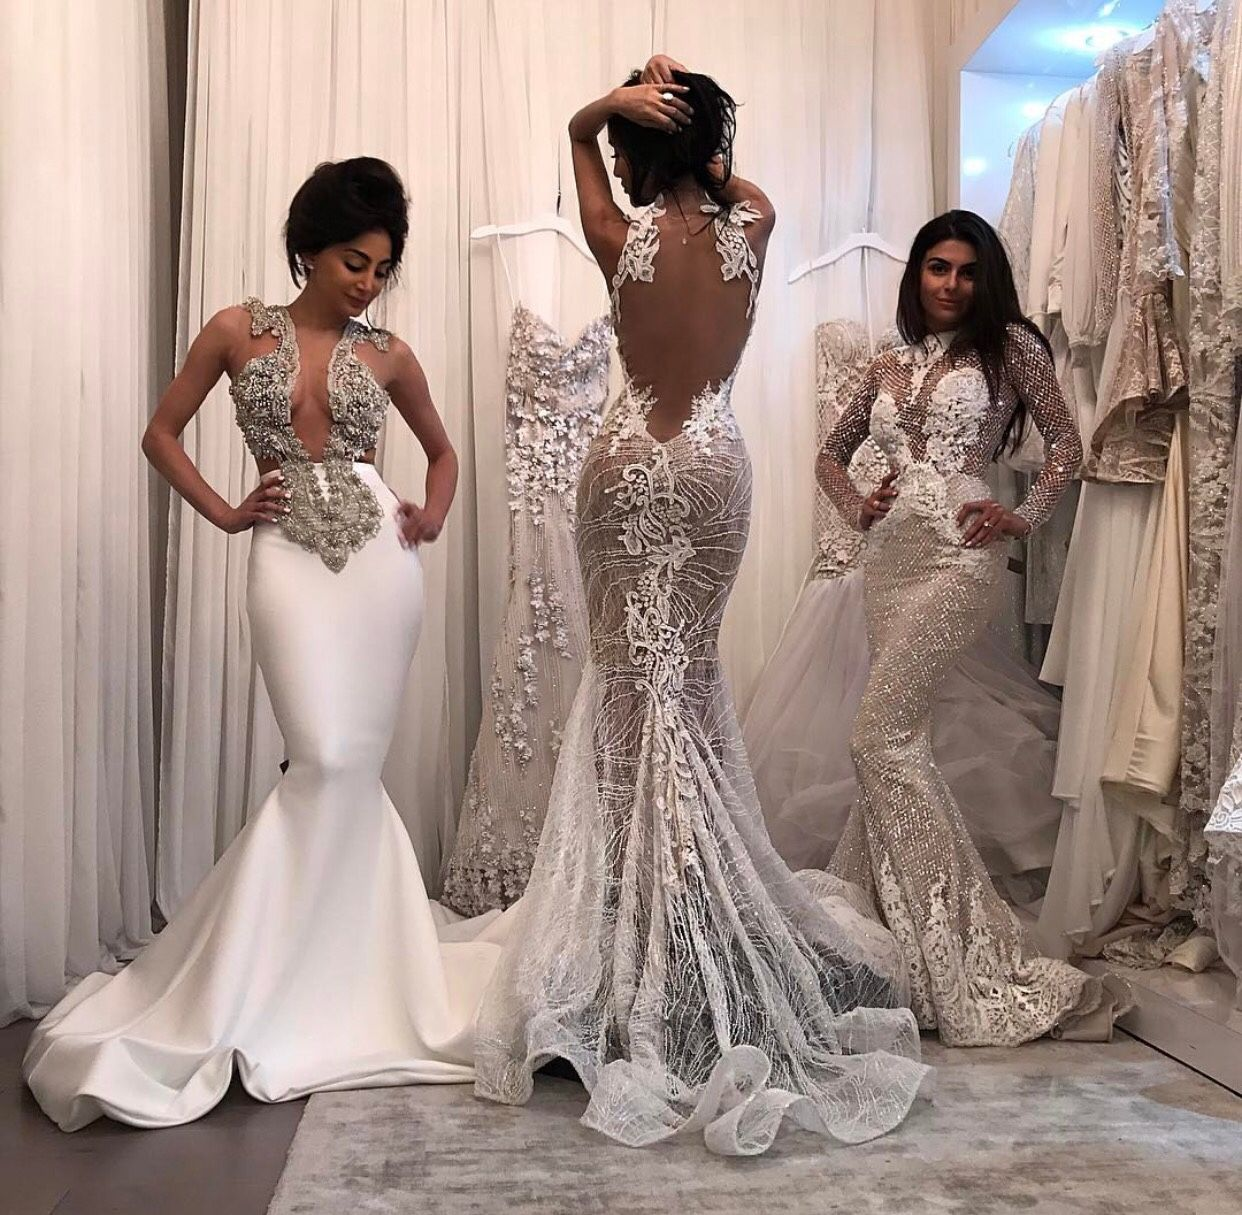 Follow br0nzed beauty for more luxury ig sharonemel for Diamond mermaid wedding dresses